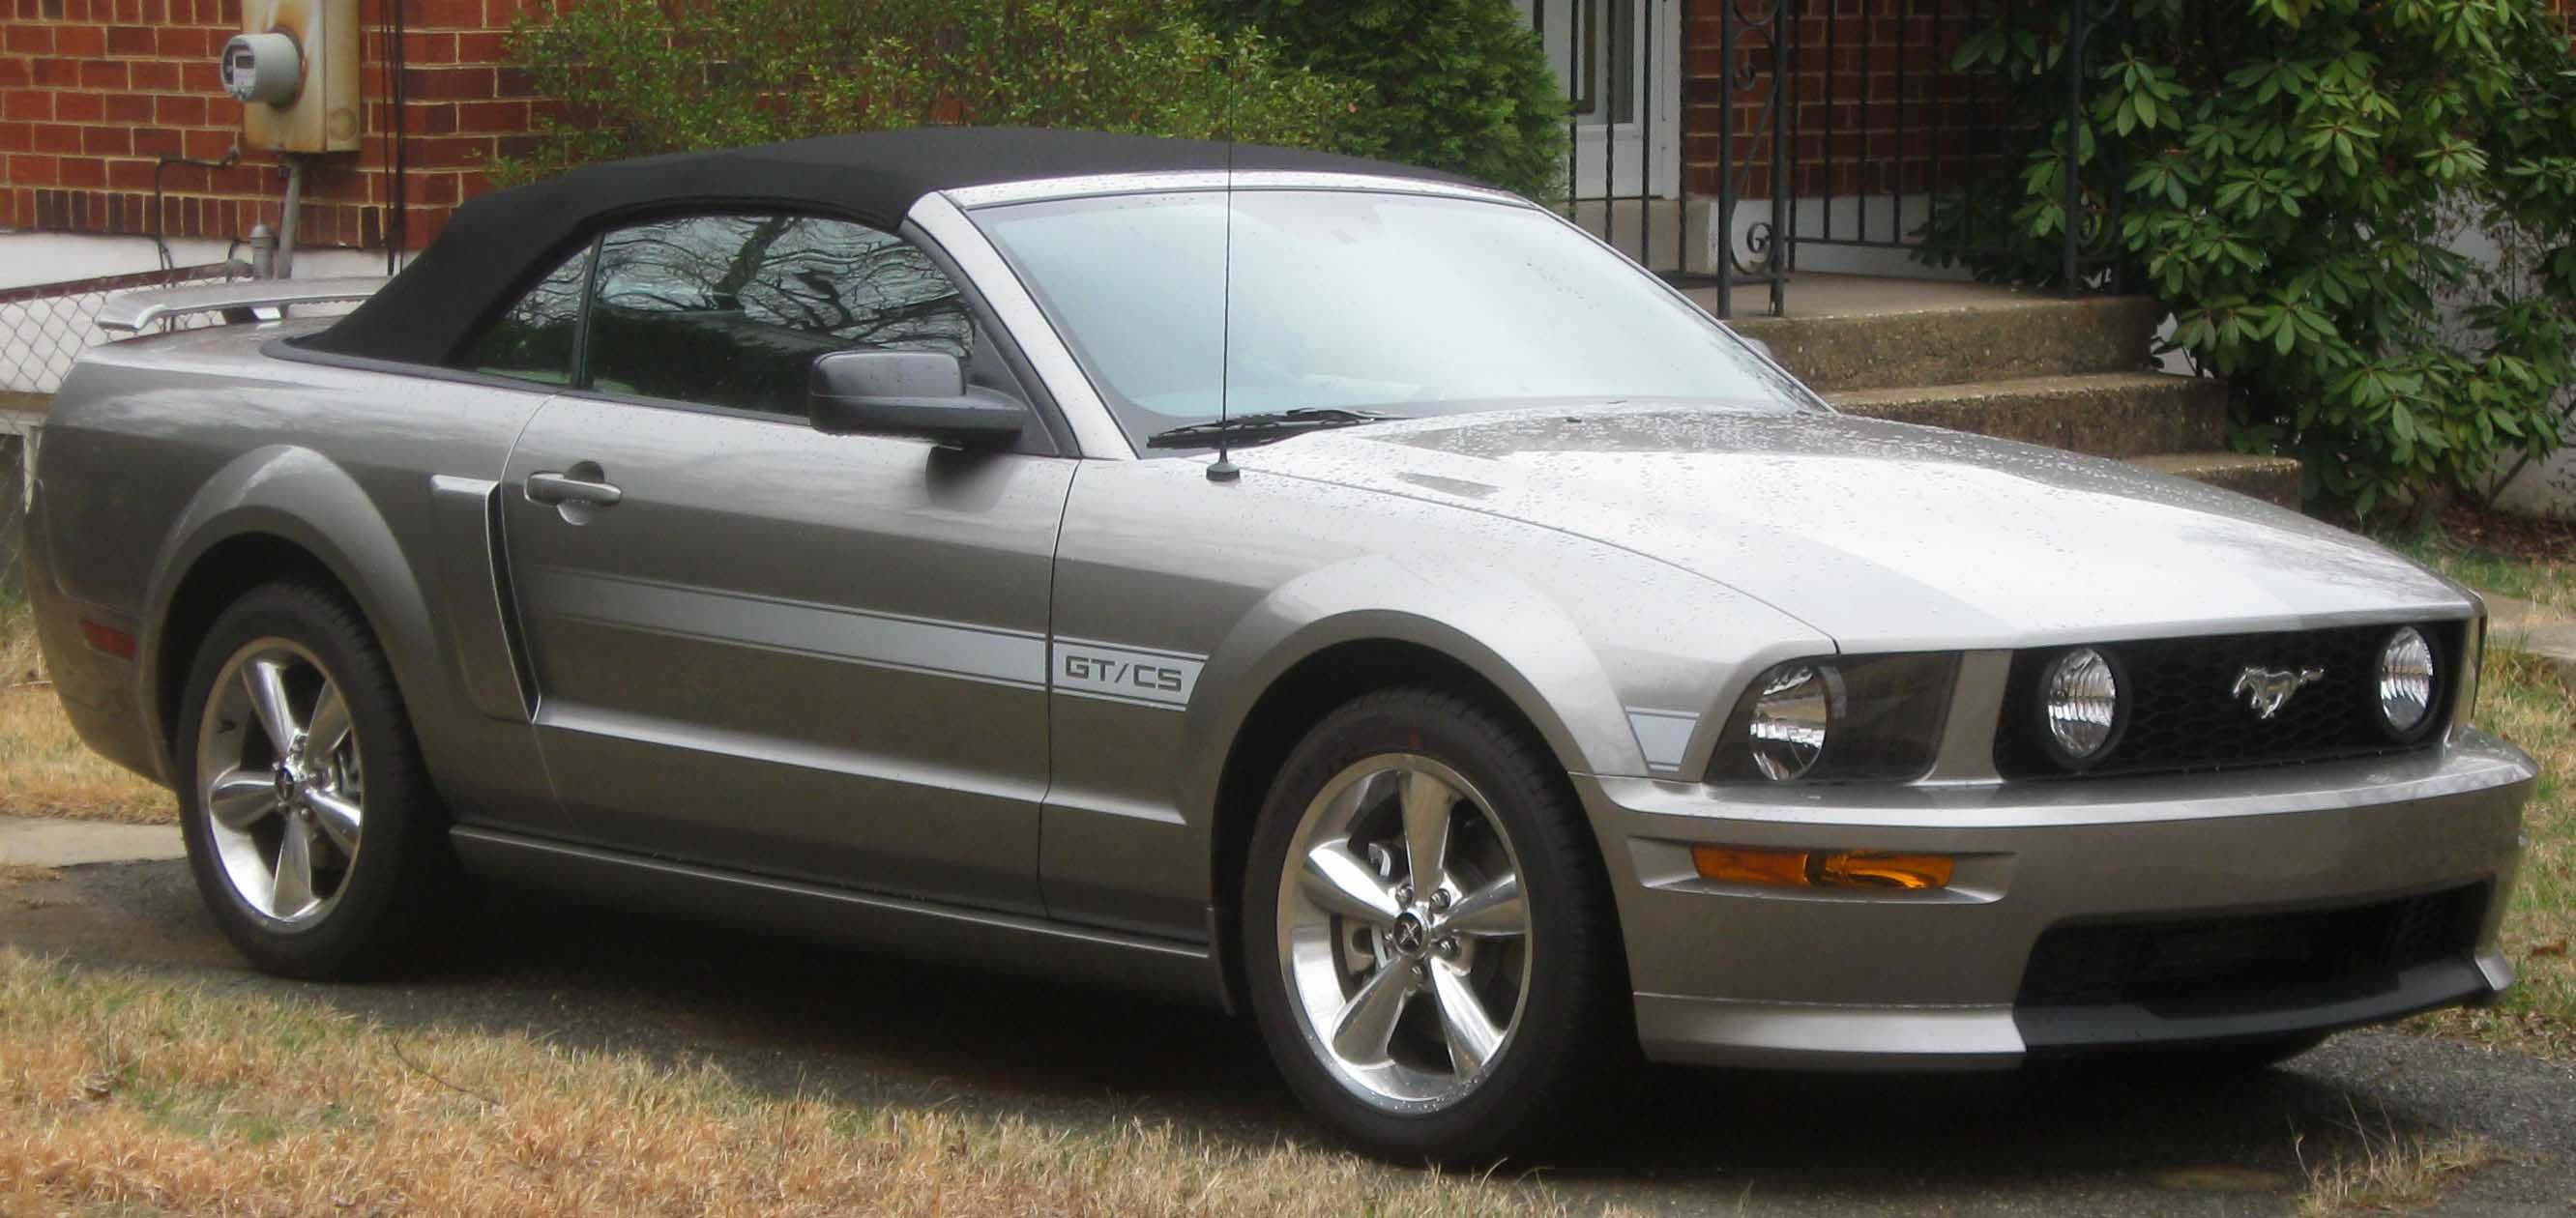 Ford Mustang Wikipedia The Free Encyclopedia Ford Mustang Gt Ford Mustang Mustang Gt